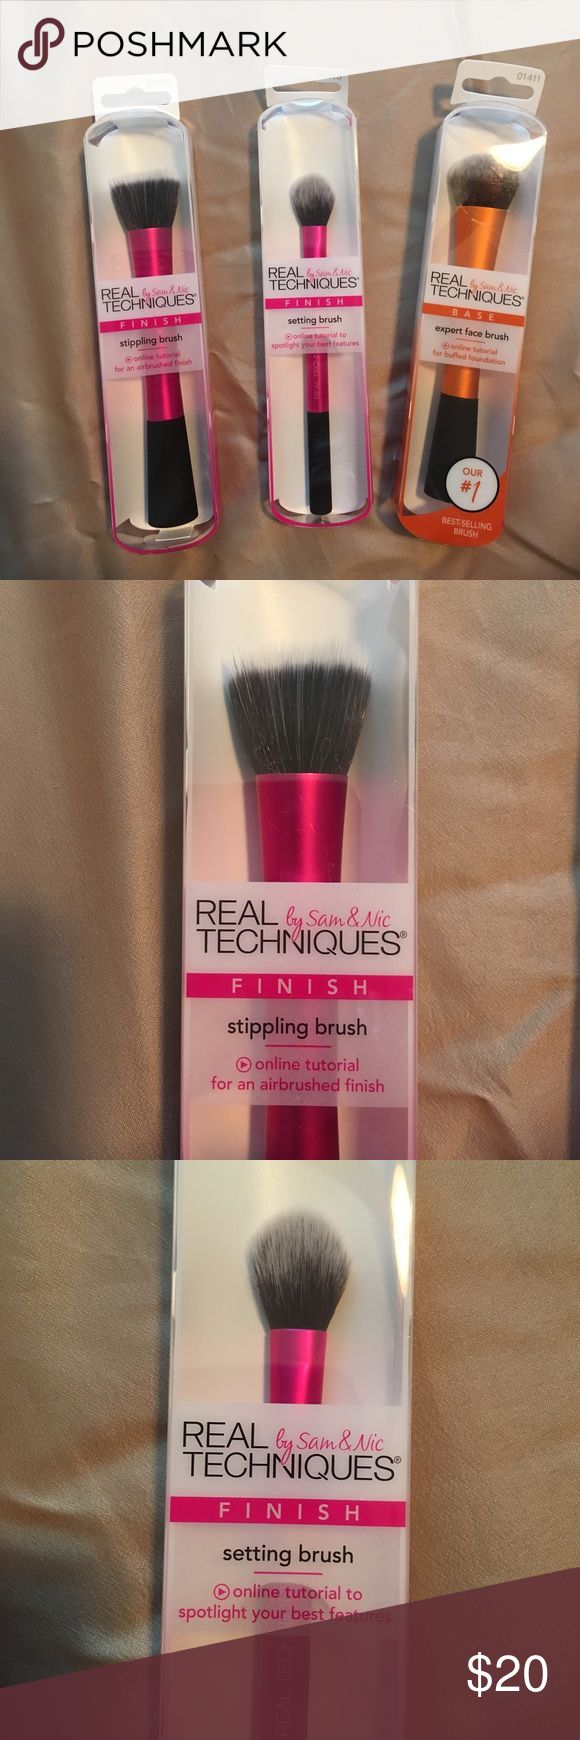 NWT bundle real technique brushes NWT never used! Still in original packaging! Real technique Stippling brush, setting brush, expert face brush. real techniques  Makeup Brushes & Tools